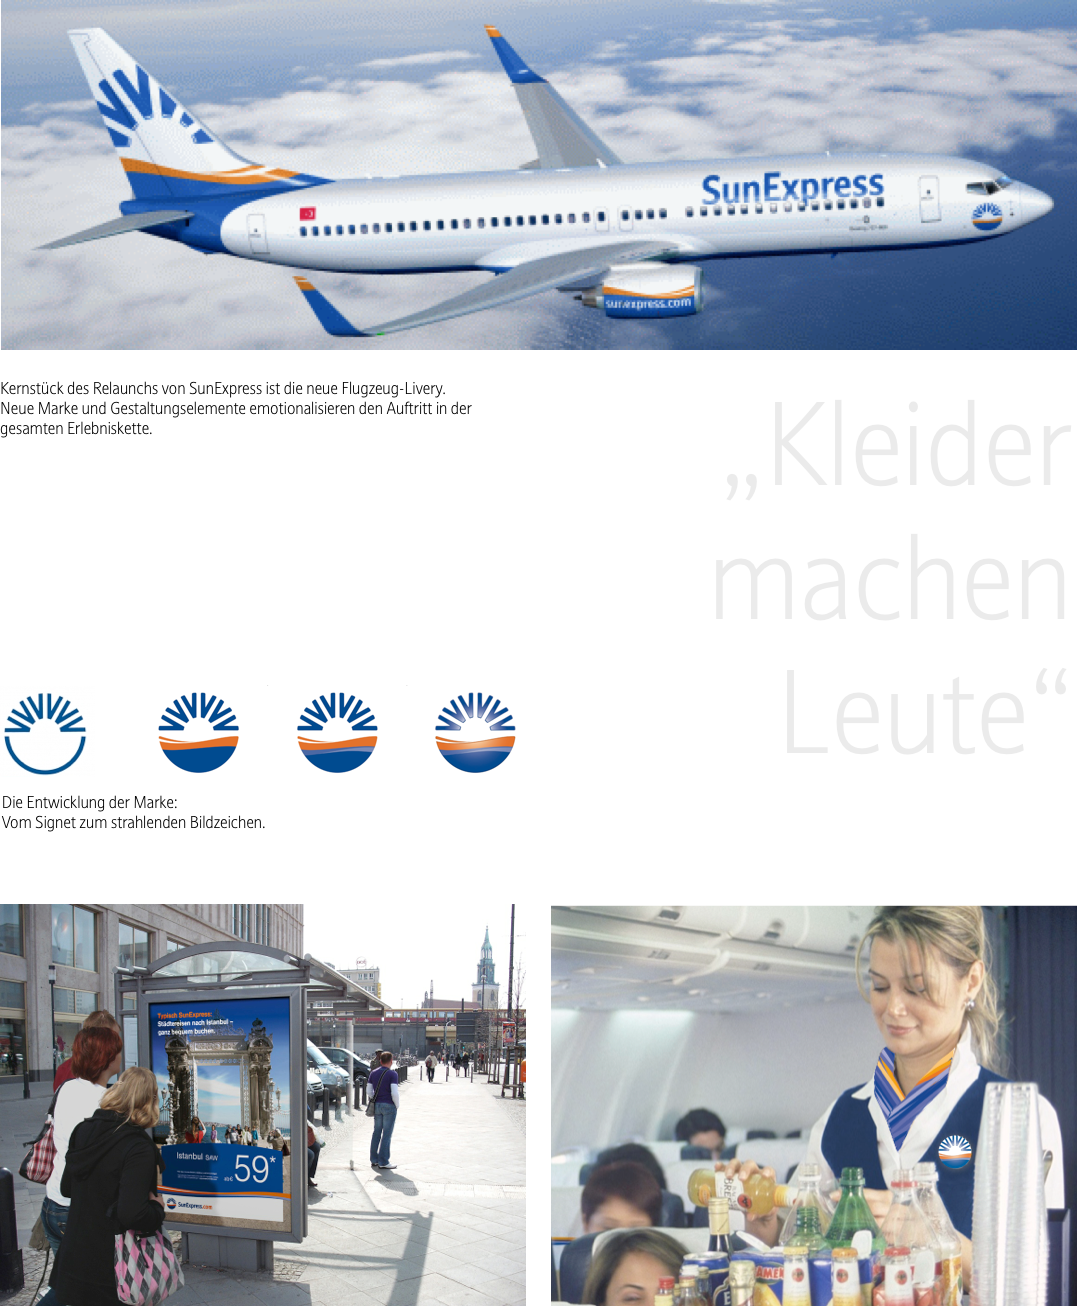 sunexpress joint subsidiary of lufthansa and turkish airlines connected primarily turkish holiday destinations with german metropolitan areas as a carrier - Sunexpress Bewerbung